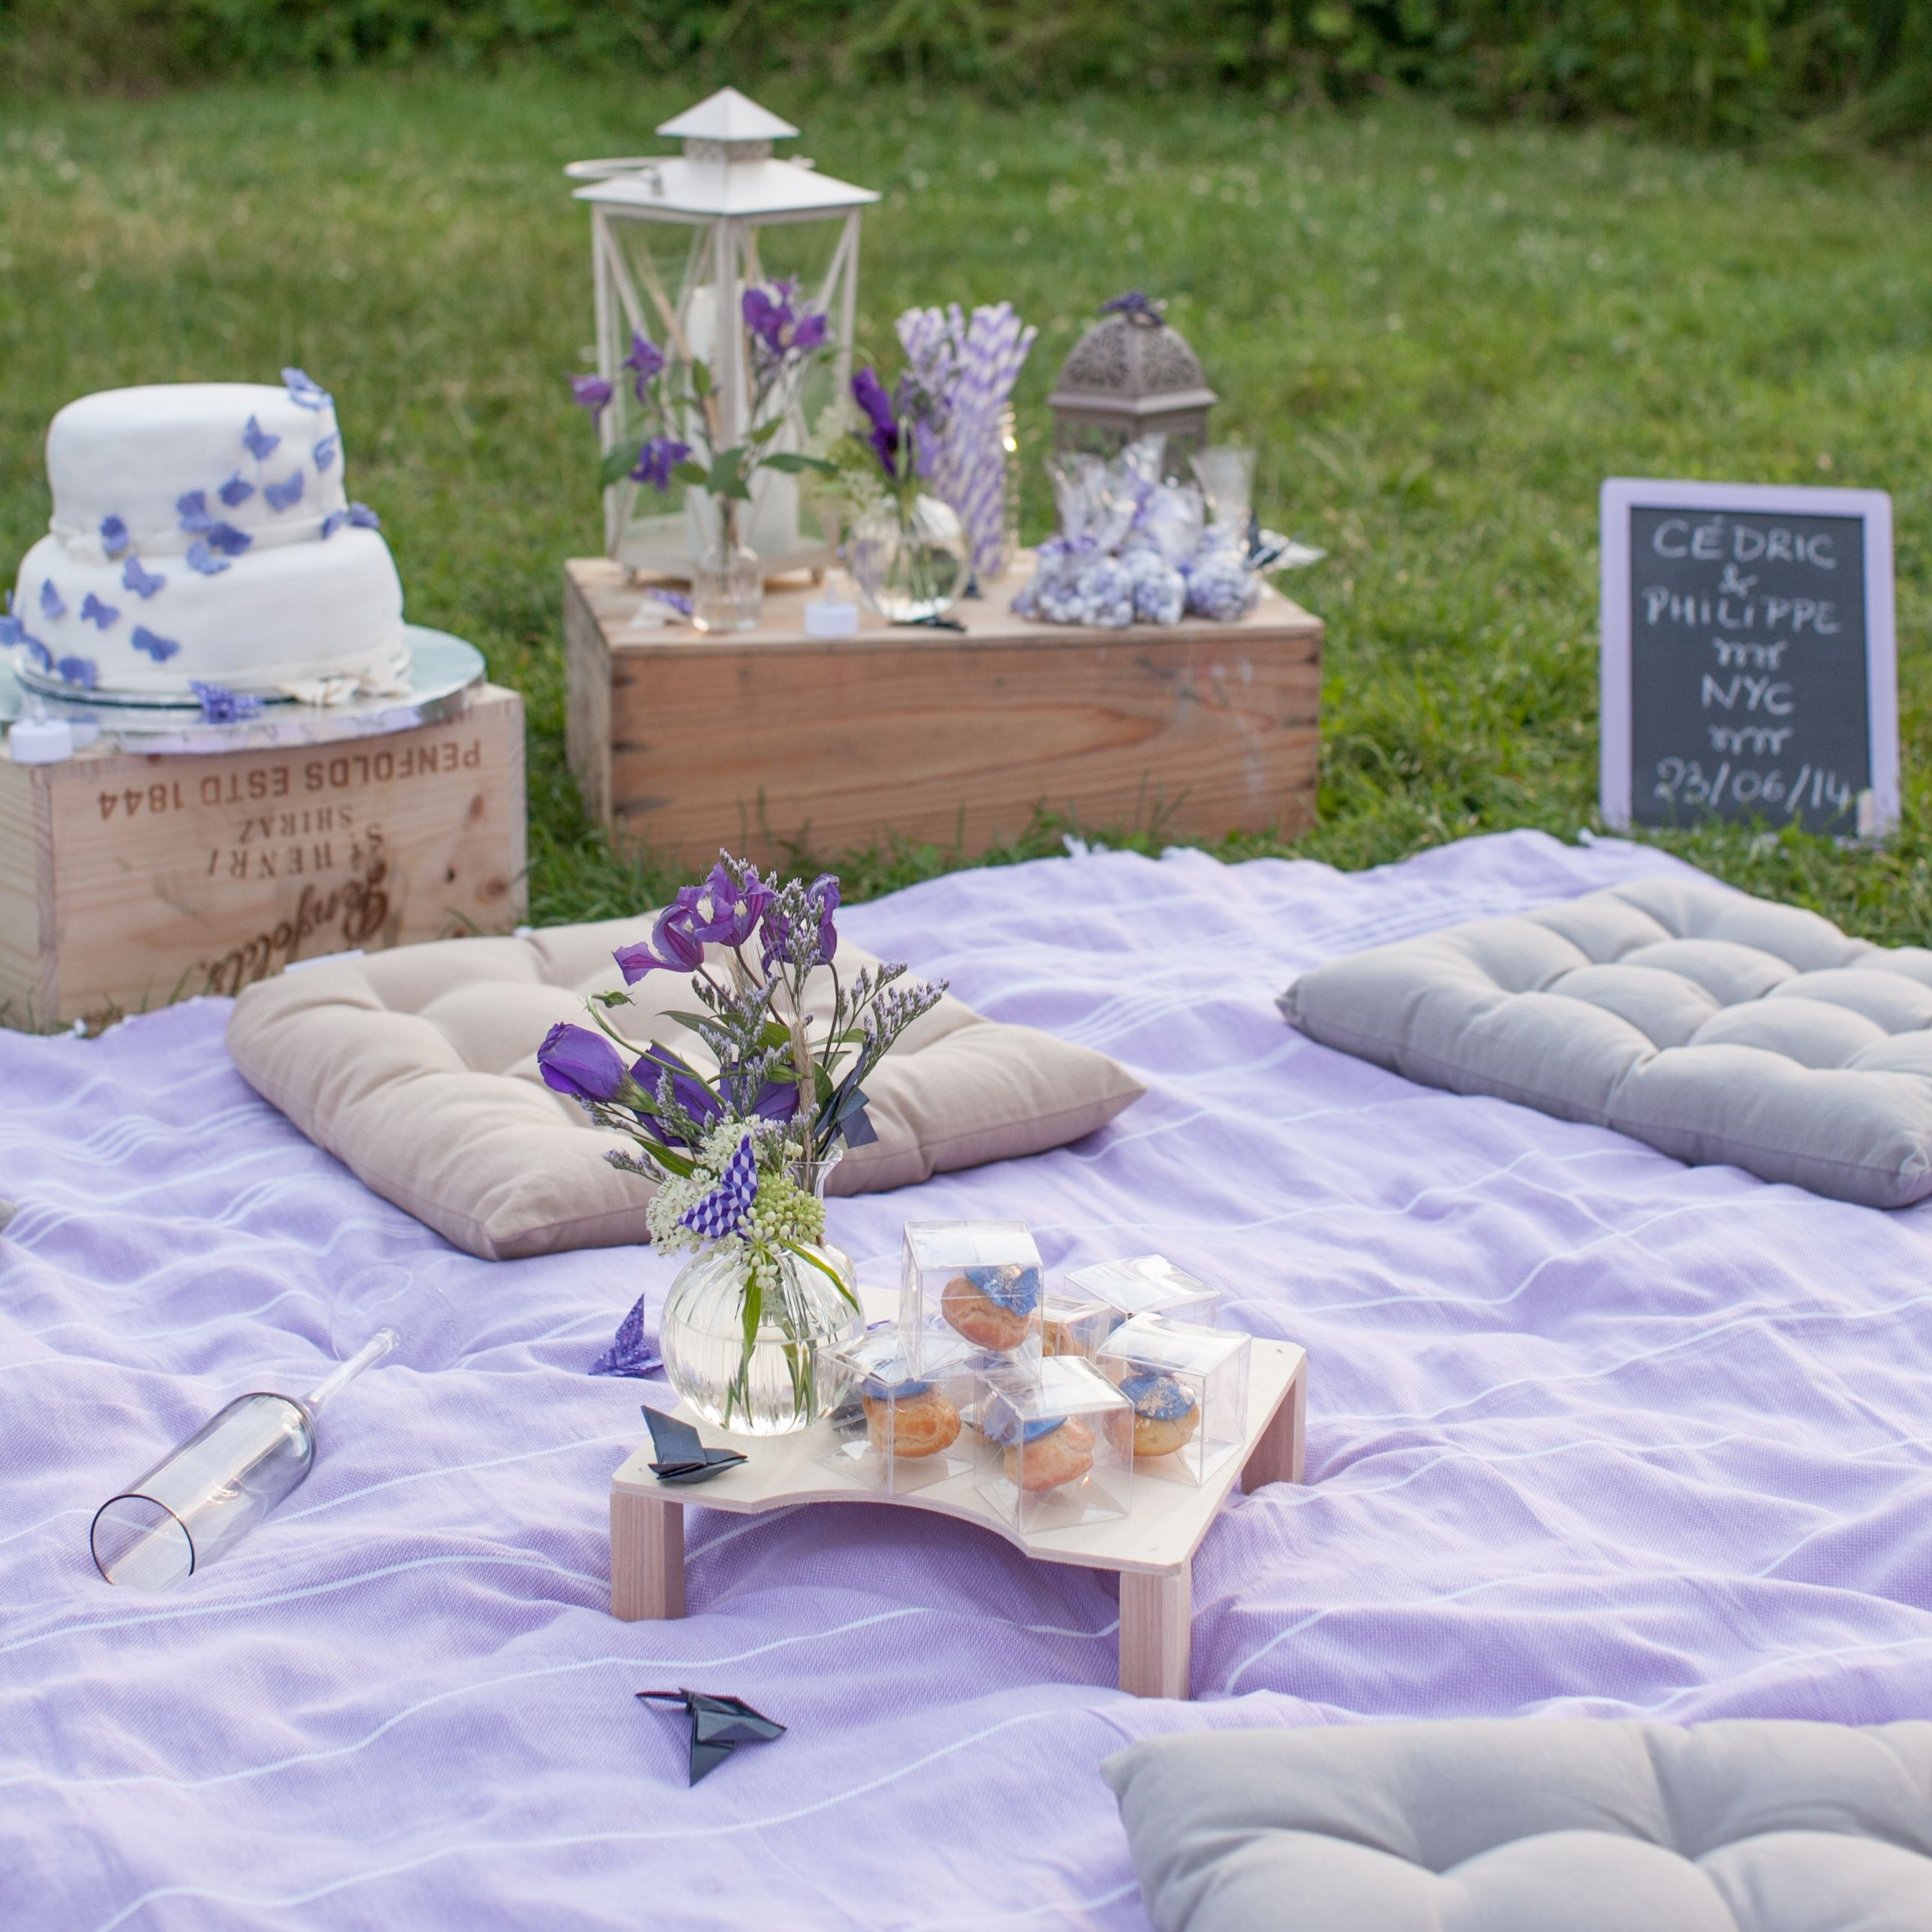 Spring Wedding Reception Ideas: Purple Picnic Reception Decor In Manhattan, NY